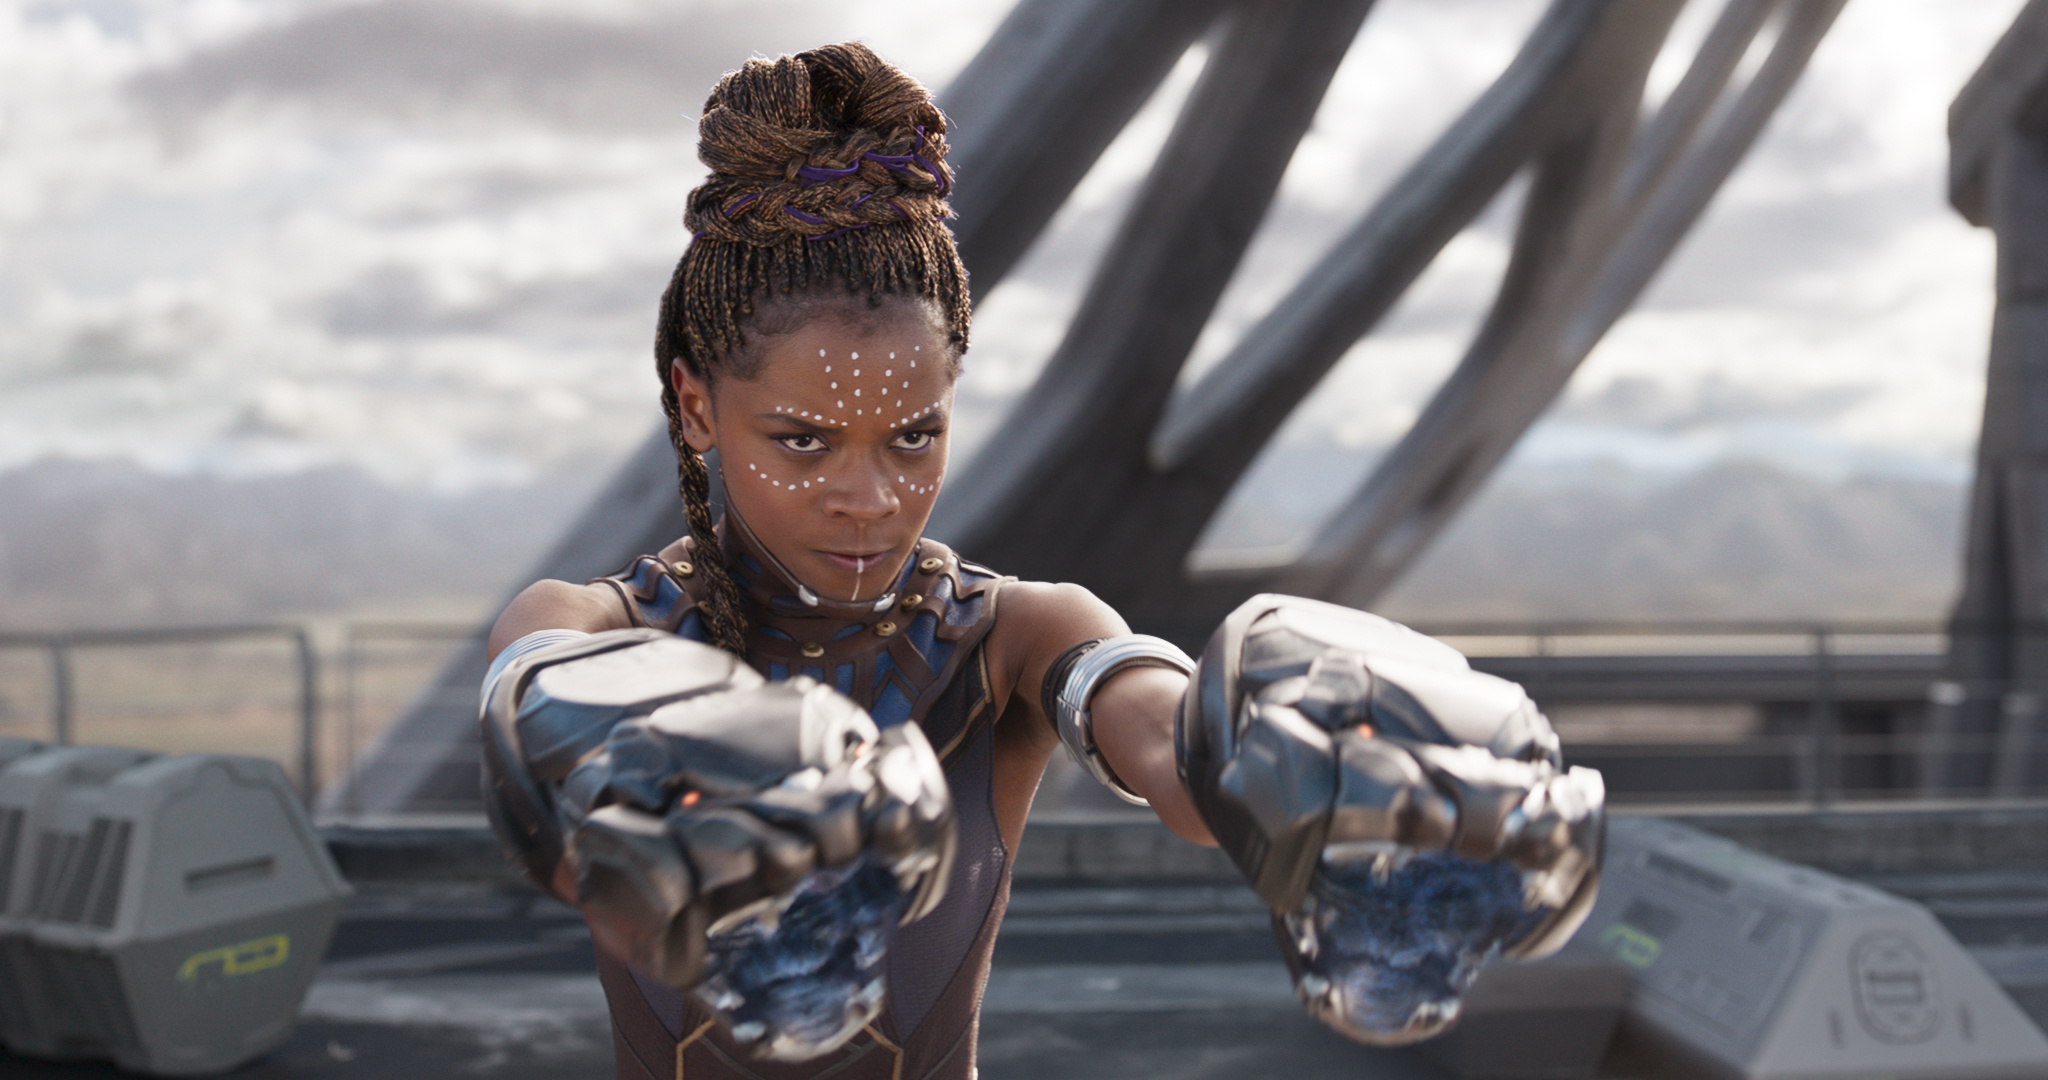 'Black Panther' star Letitia Wright injured while filming stunt on set of sequel